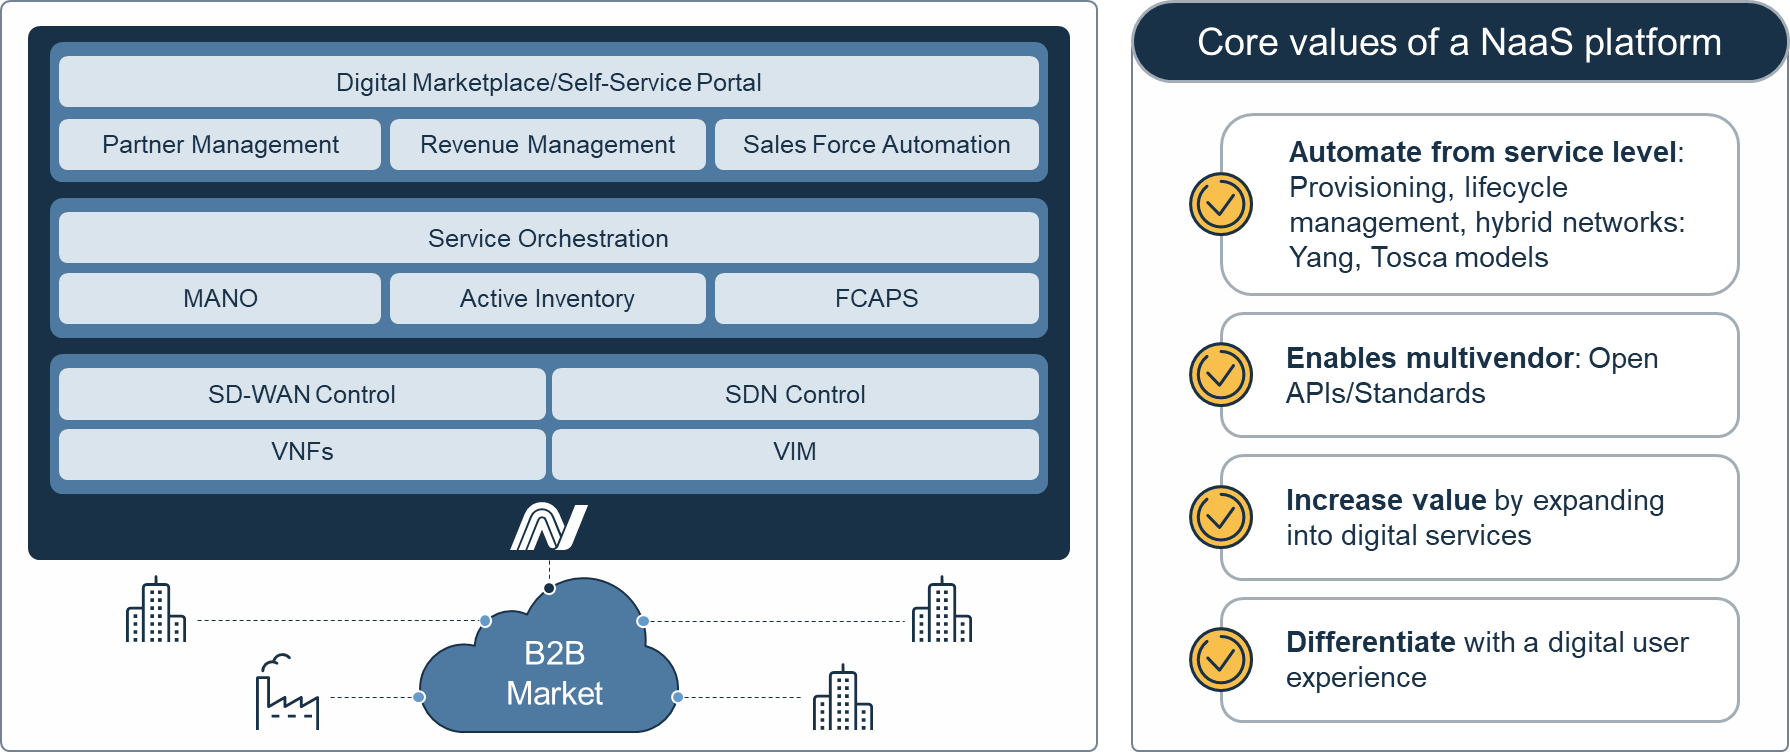 Network-as-a-Service Platform Architecture and Core Values